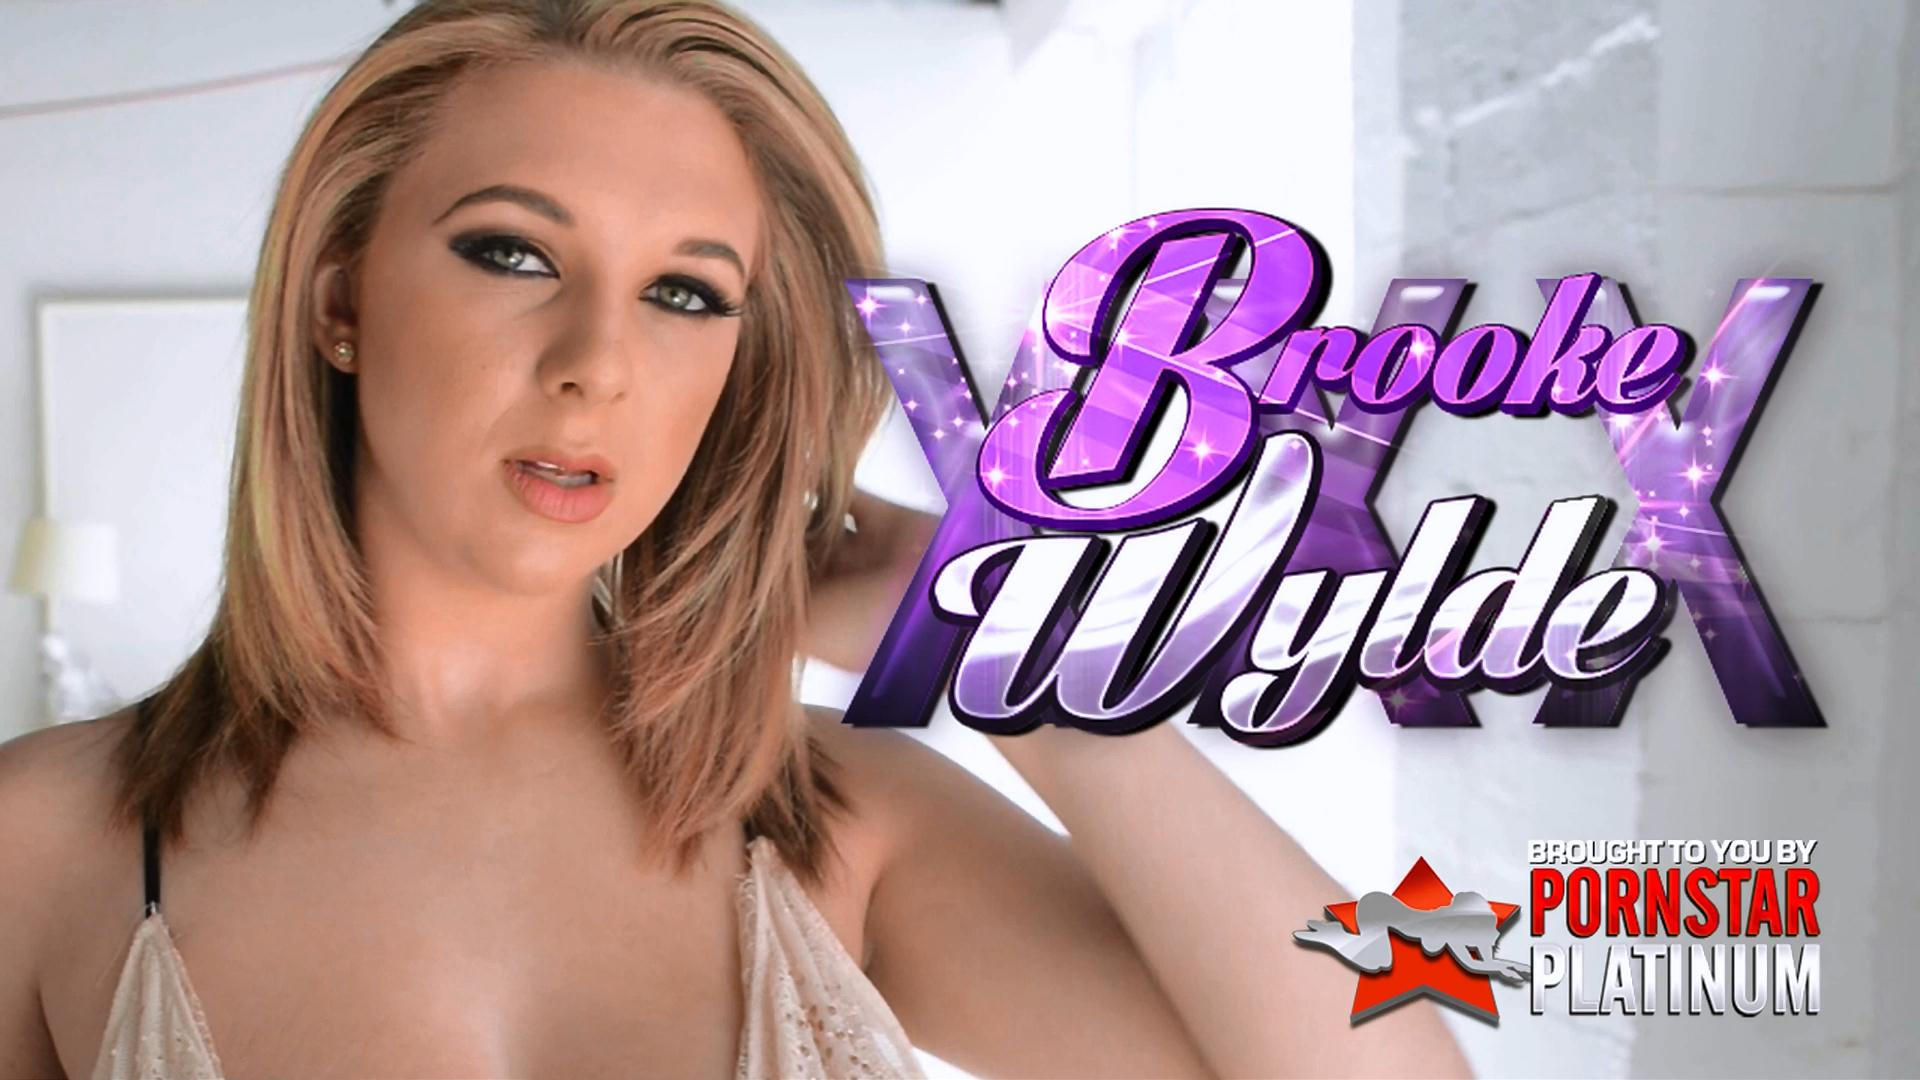 Brooke Wylde - Pornstar Collection (13) (Big Ass, Big Tits, Lesbian, Solo, Toys, Anal, Squirt)